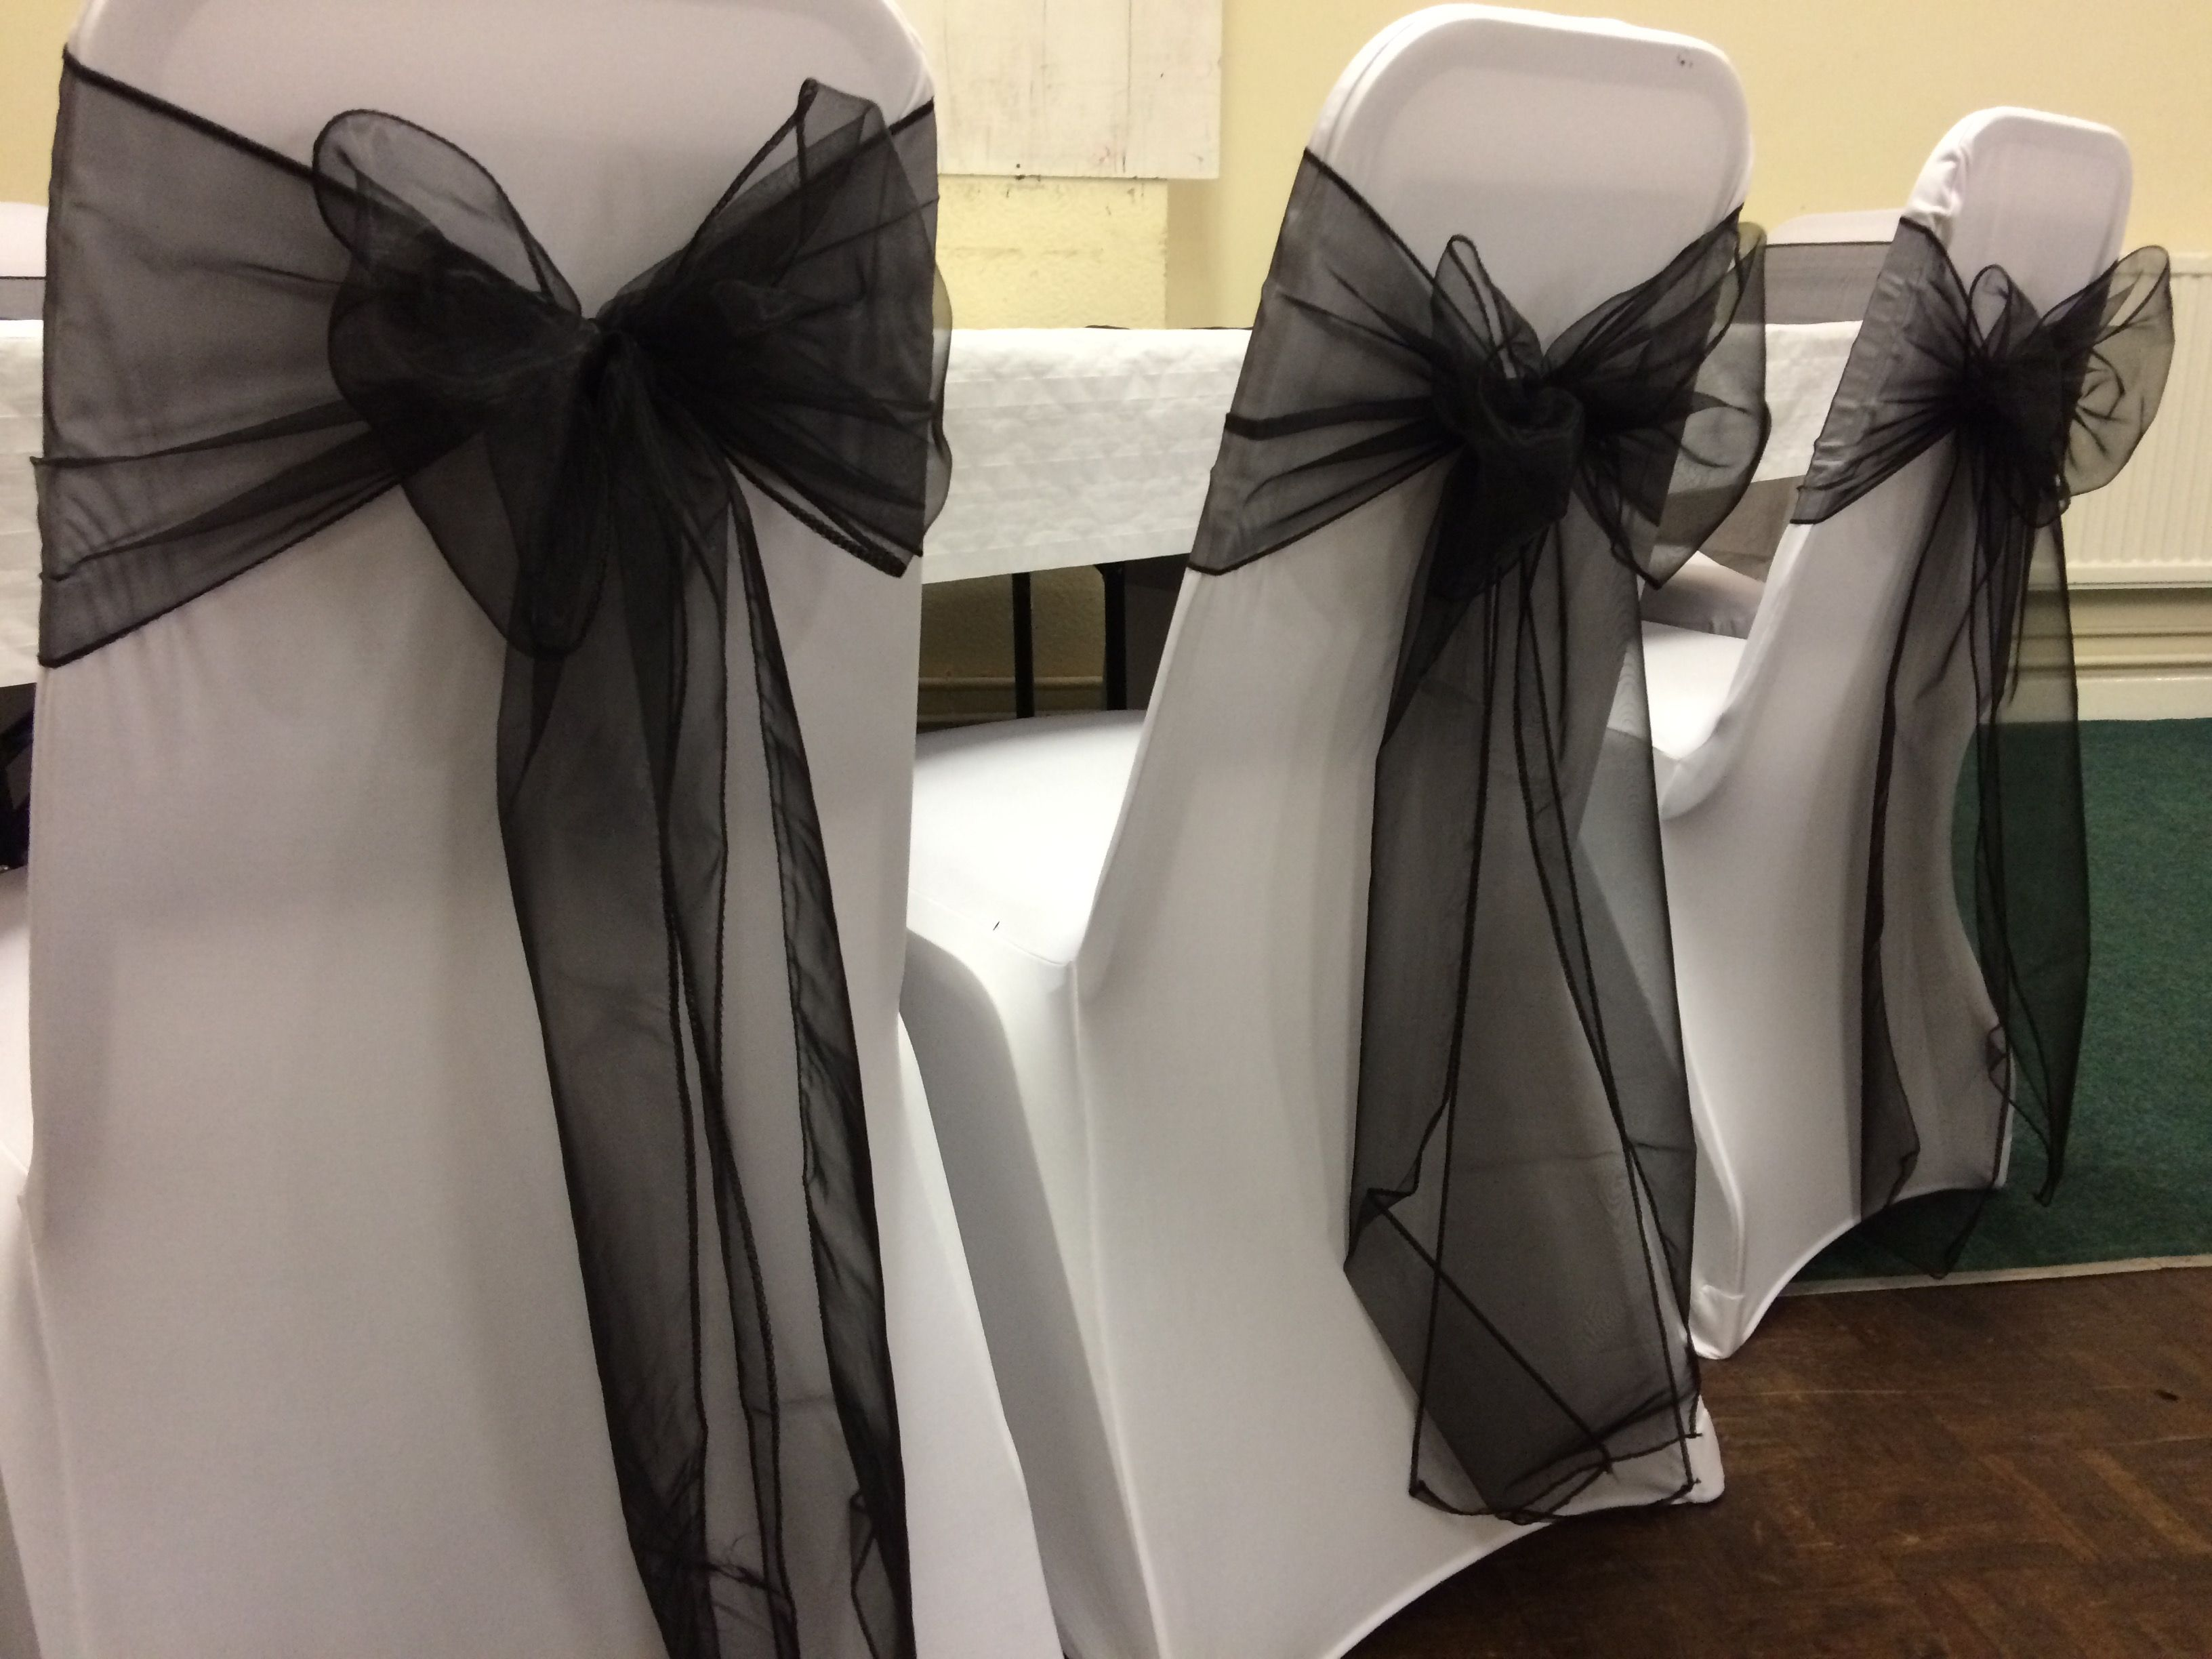 Wedding Chair Covers Swansea Fishing Arm White With Black Organza Sashes At A Dressed By Affinity Event Decorators